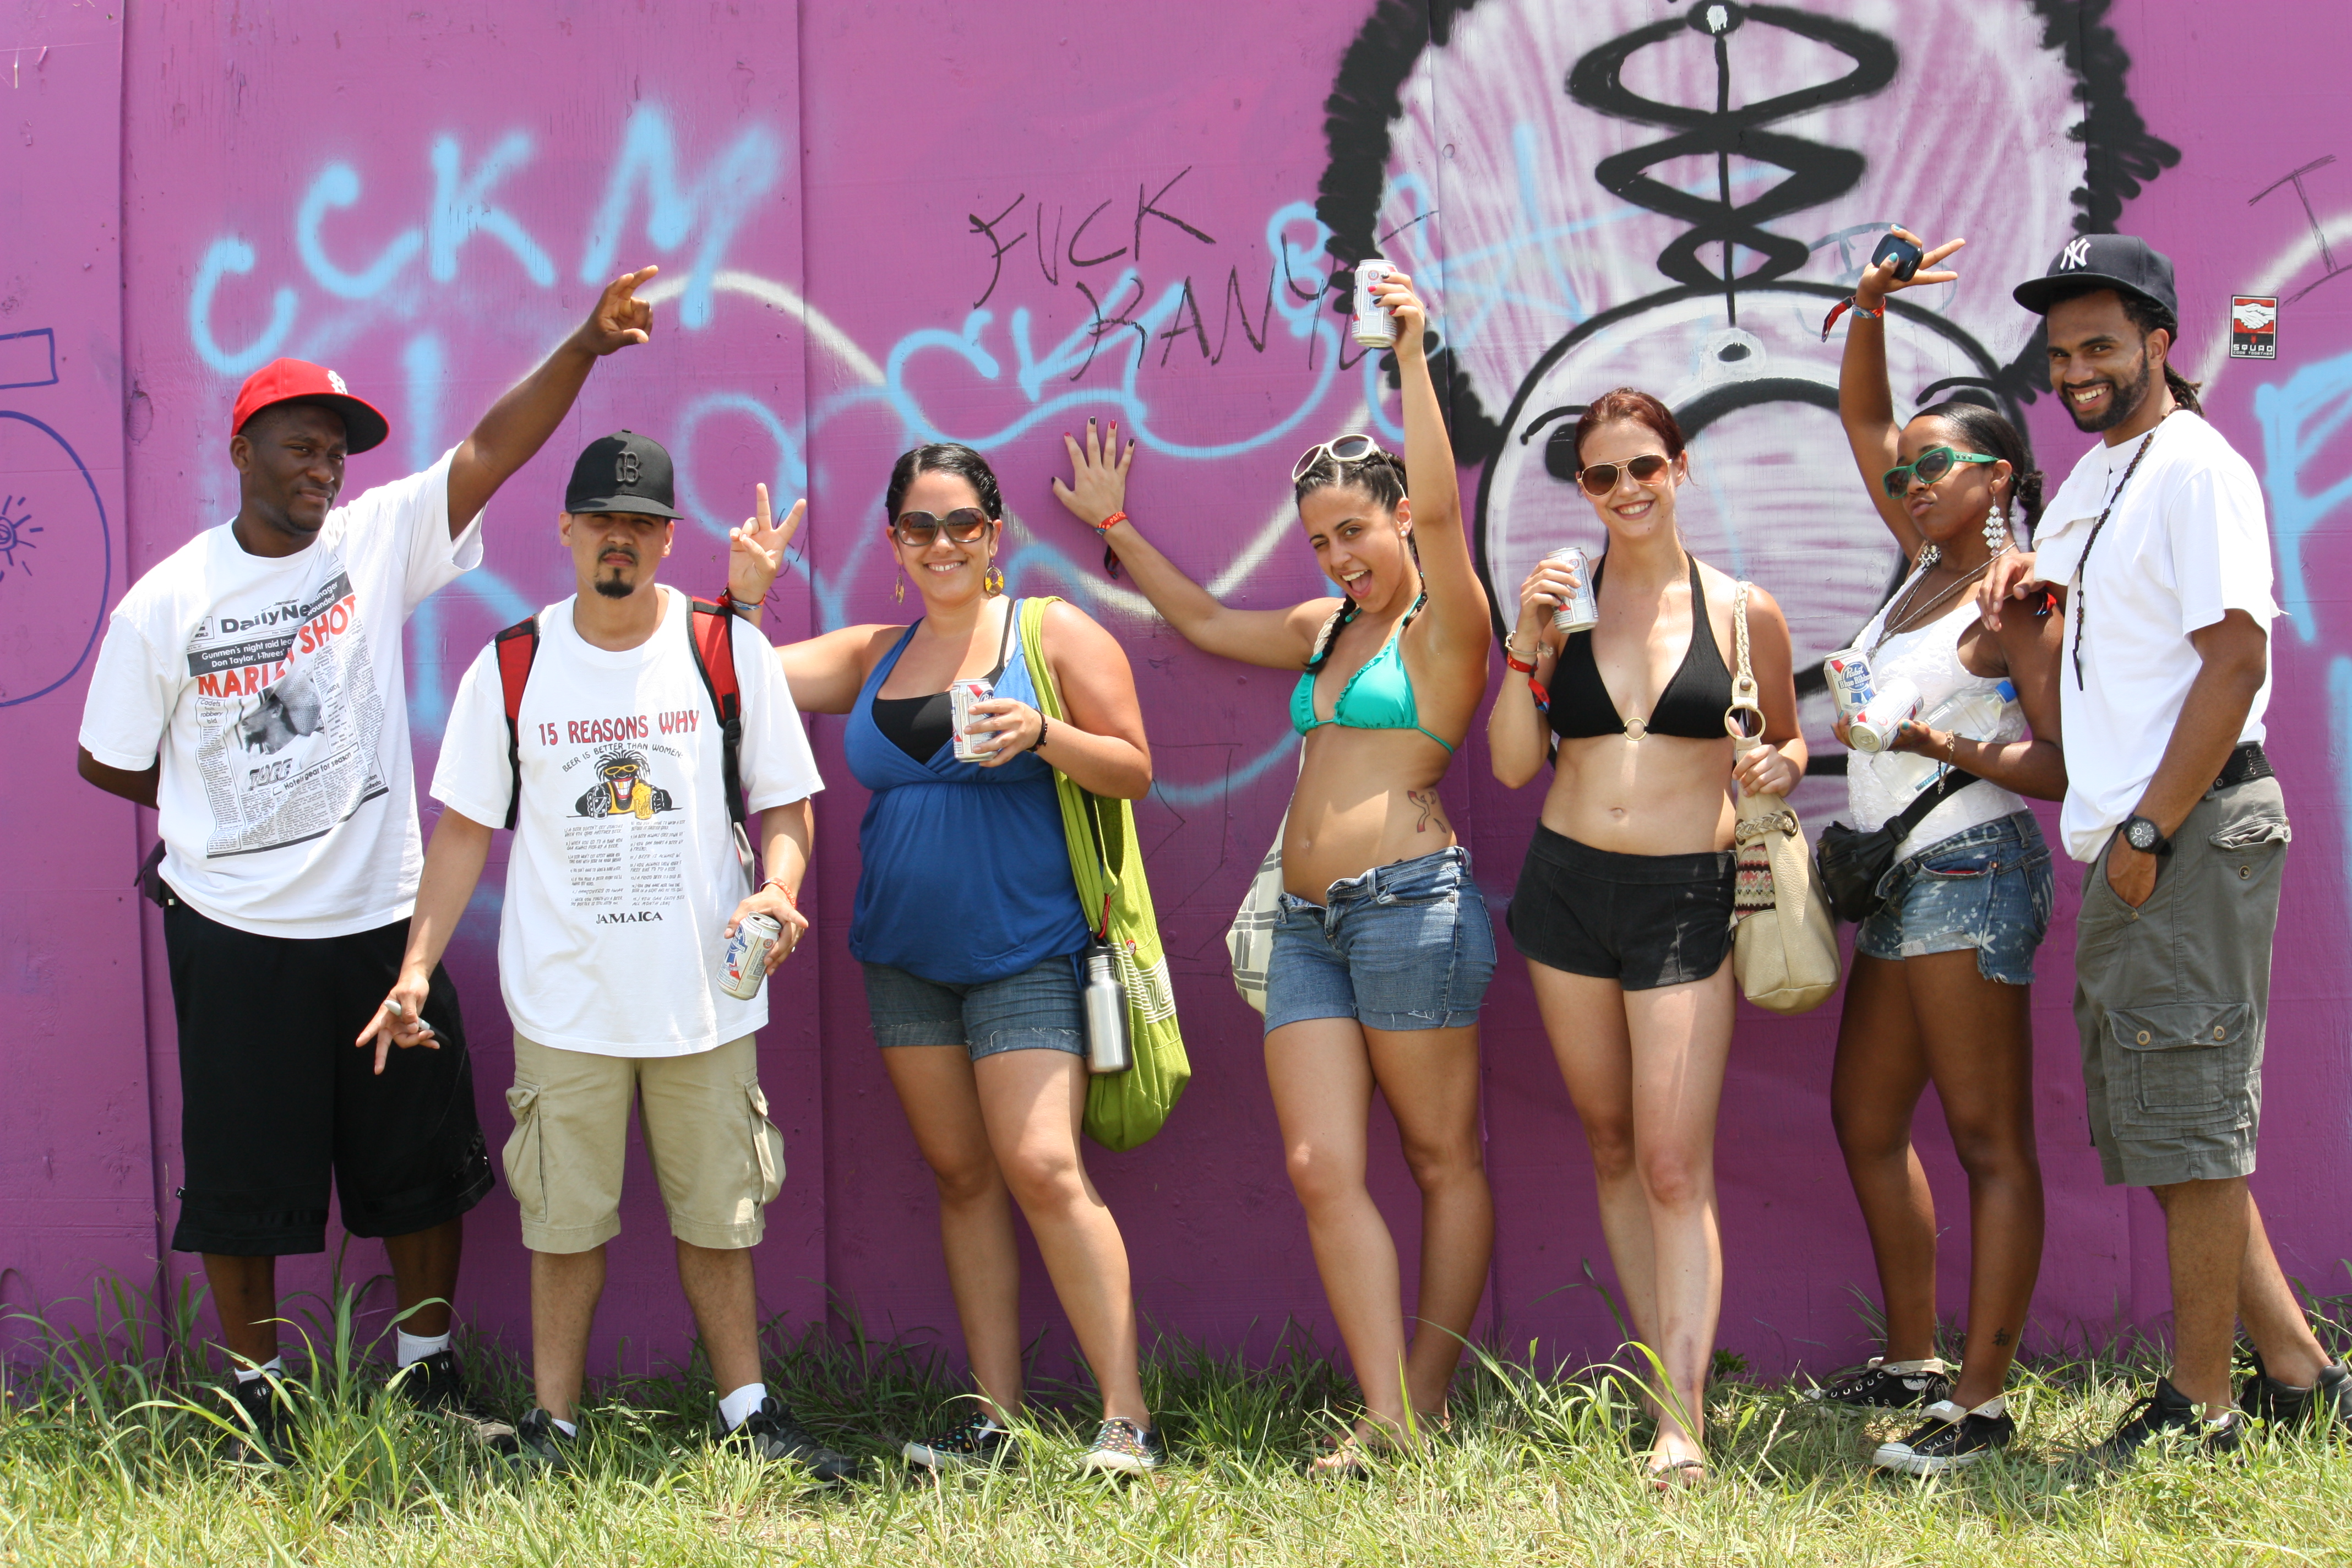 The Philly & Brooklyn crew at Bonnaroo